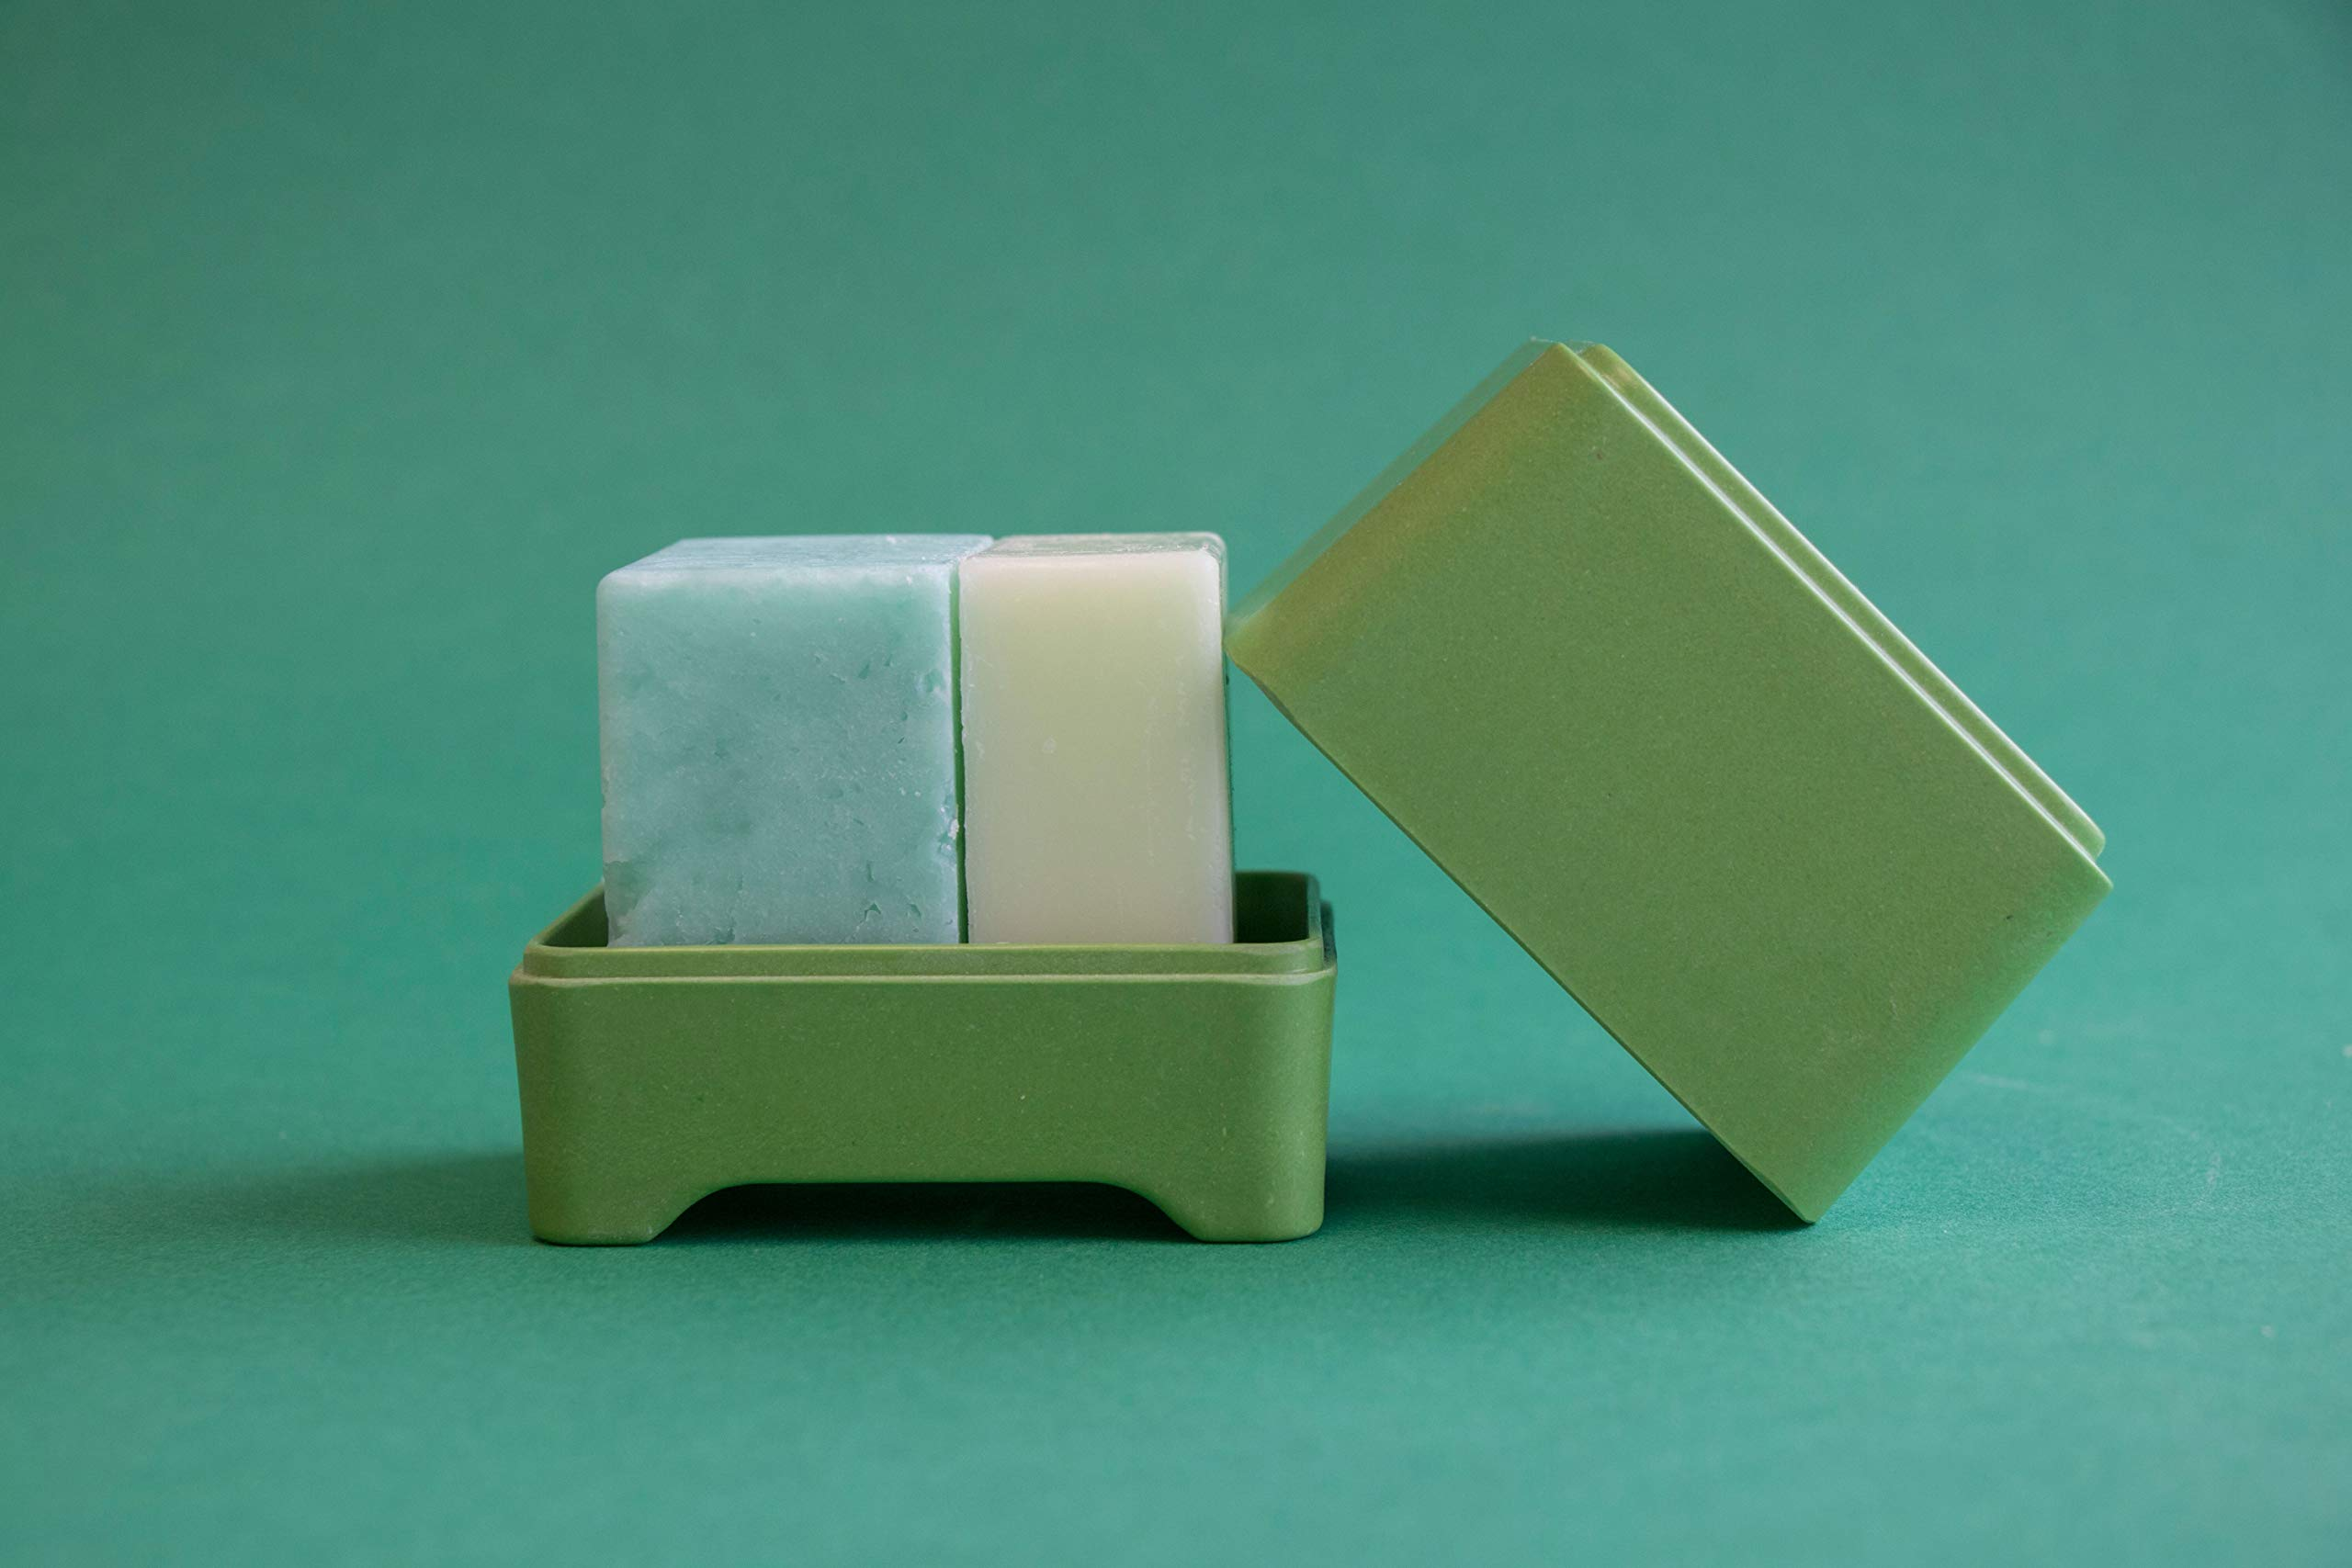 Ethique In Shower Container Green by Ethique (Image #8)